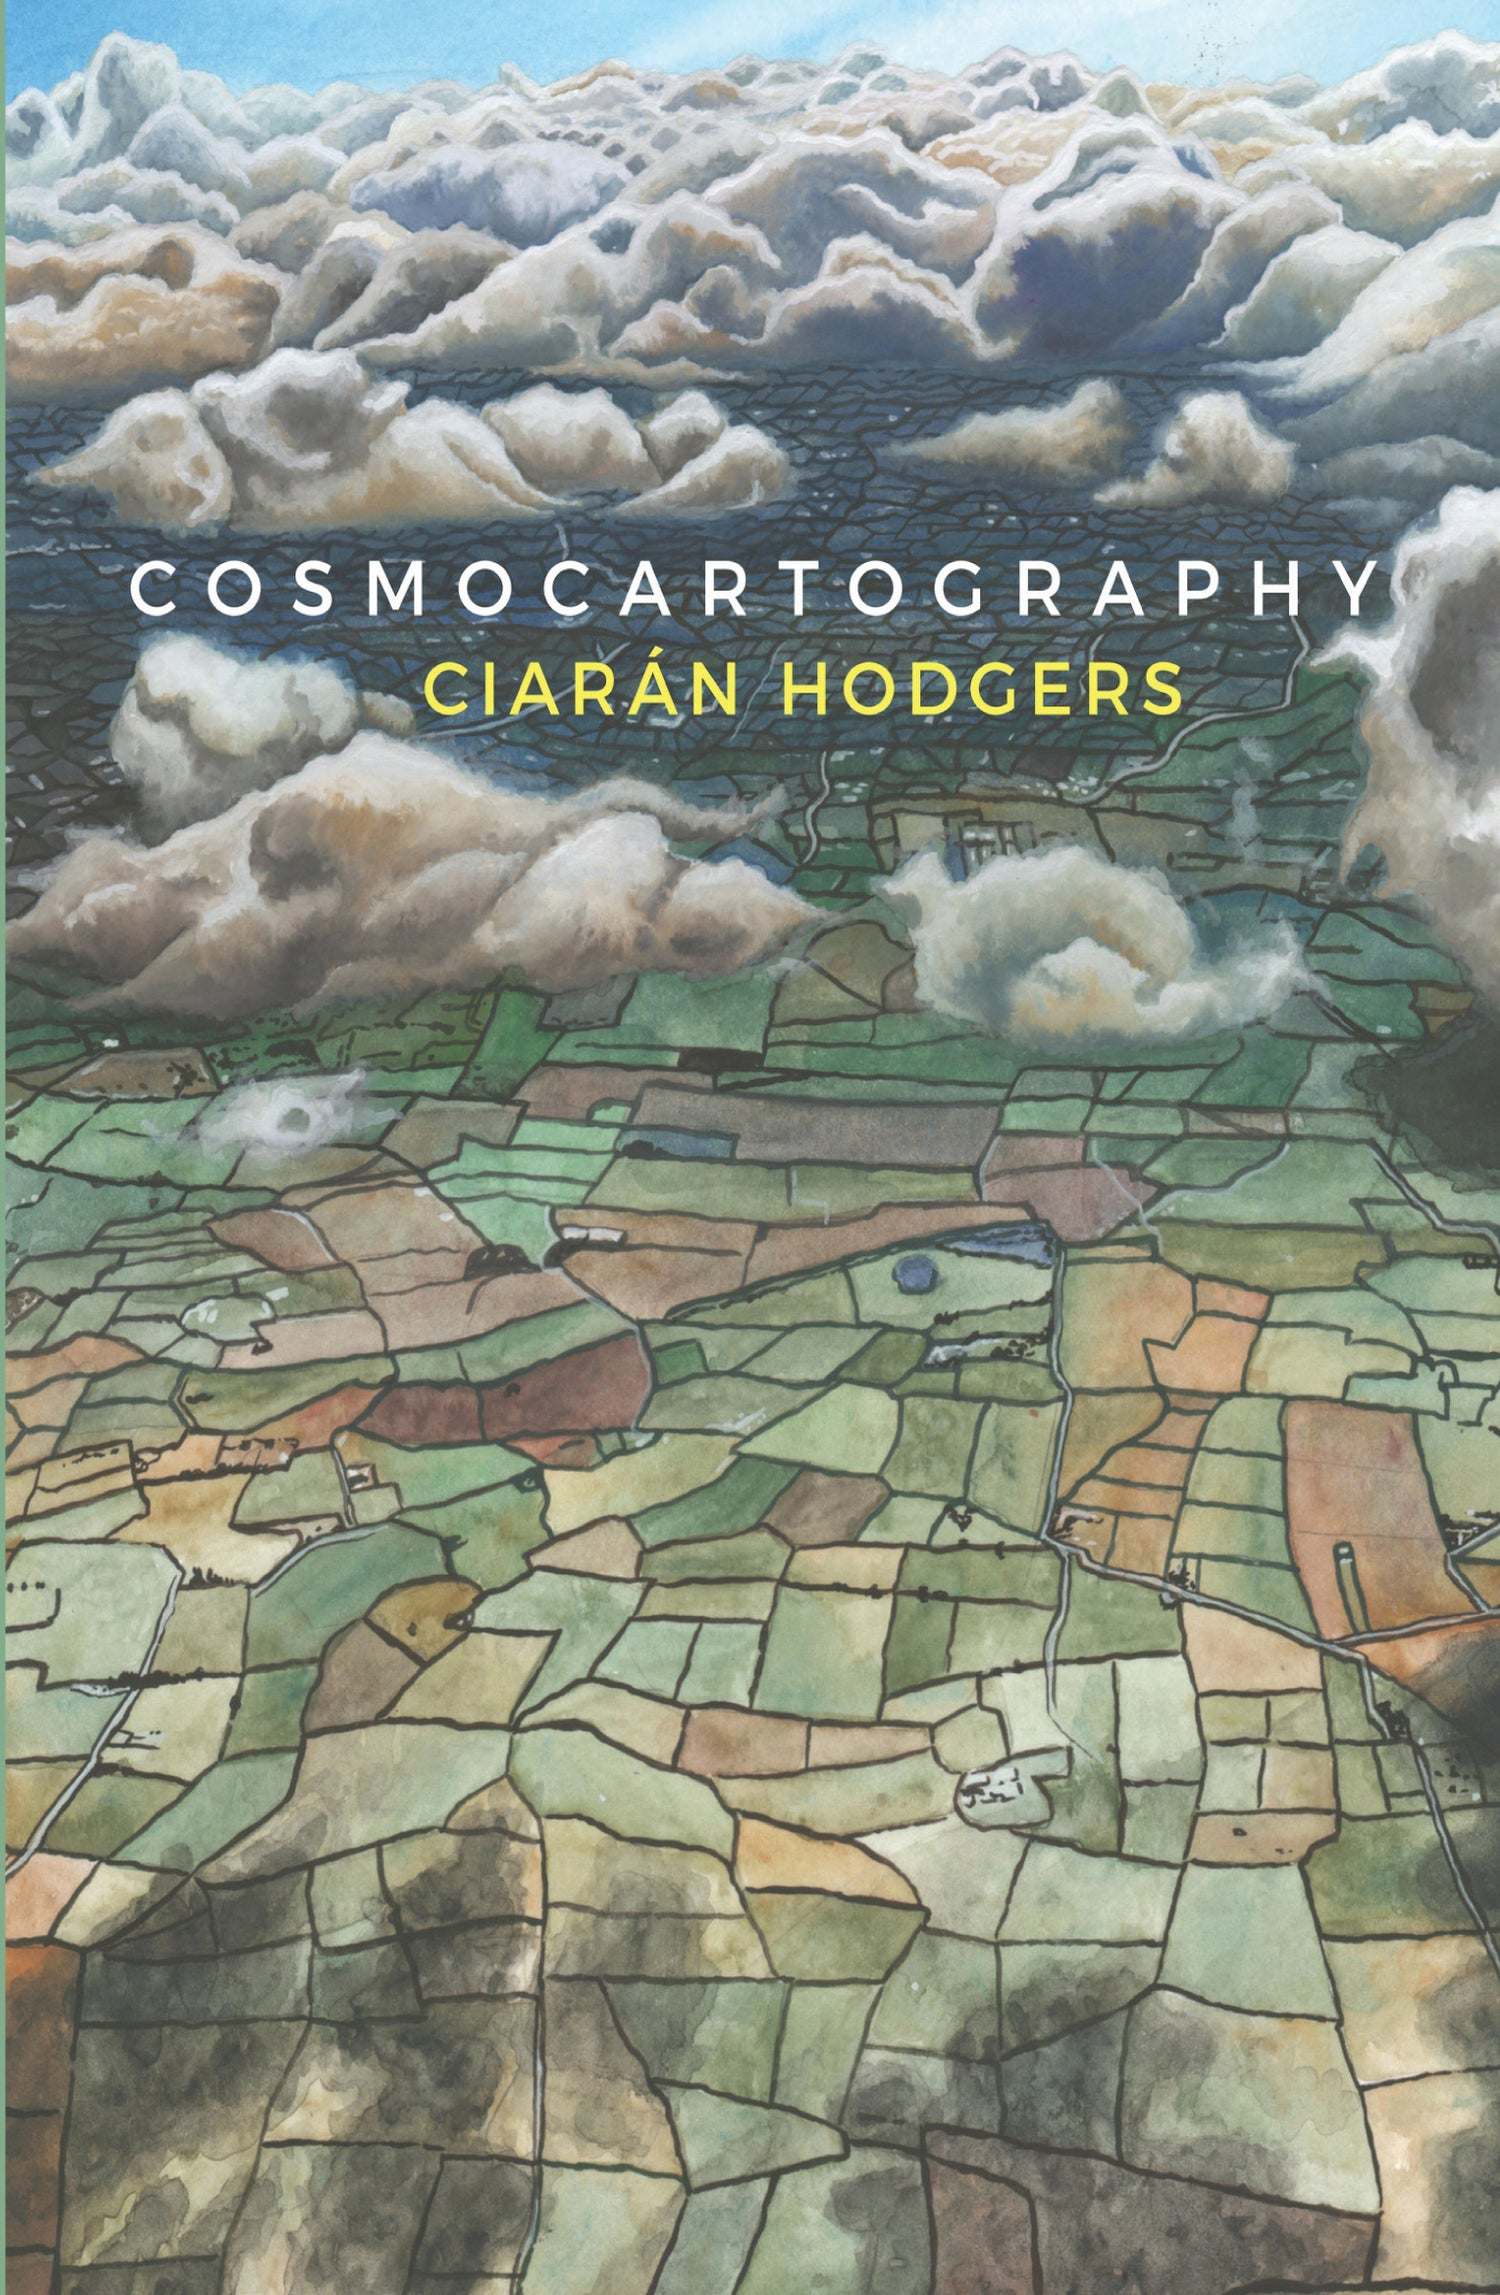 Image of Cosmocartography by Ciarán Hodgers